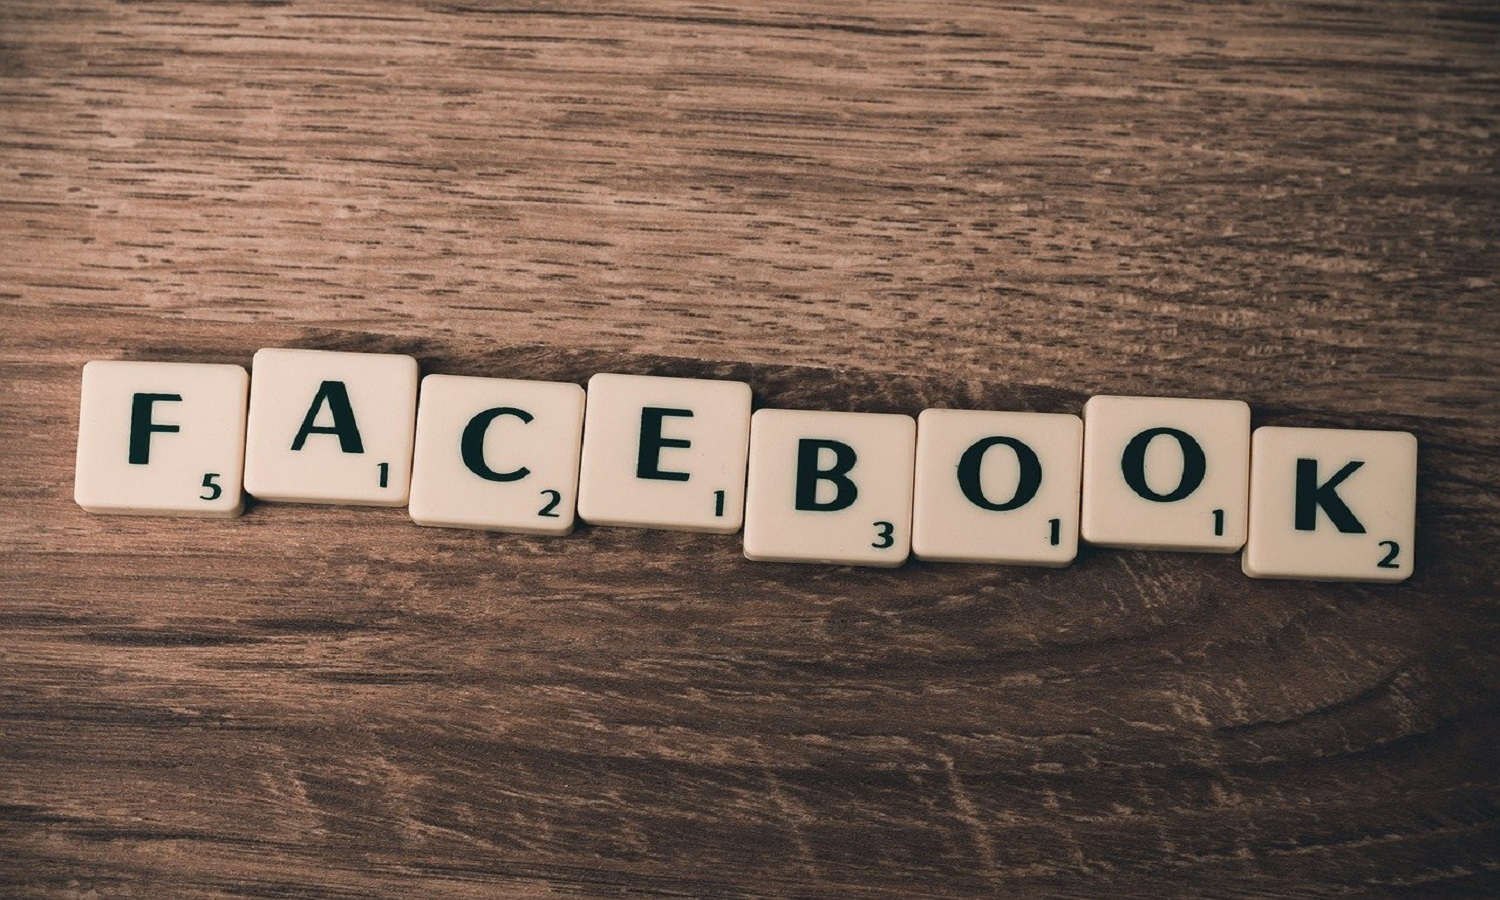 Learn How to Use Facebook on Roku Easily